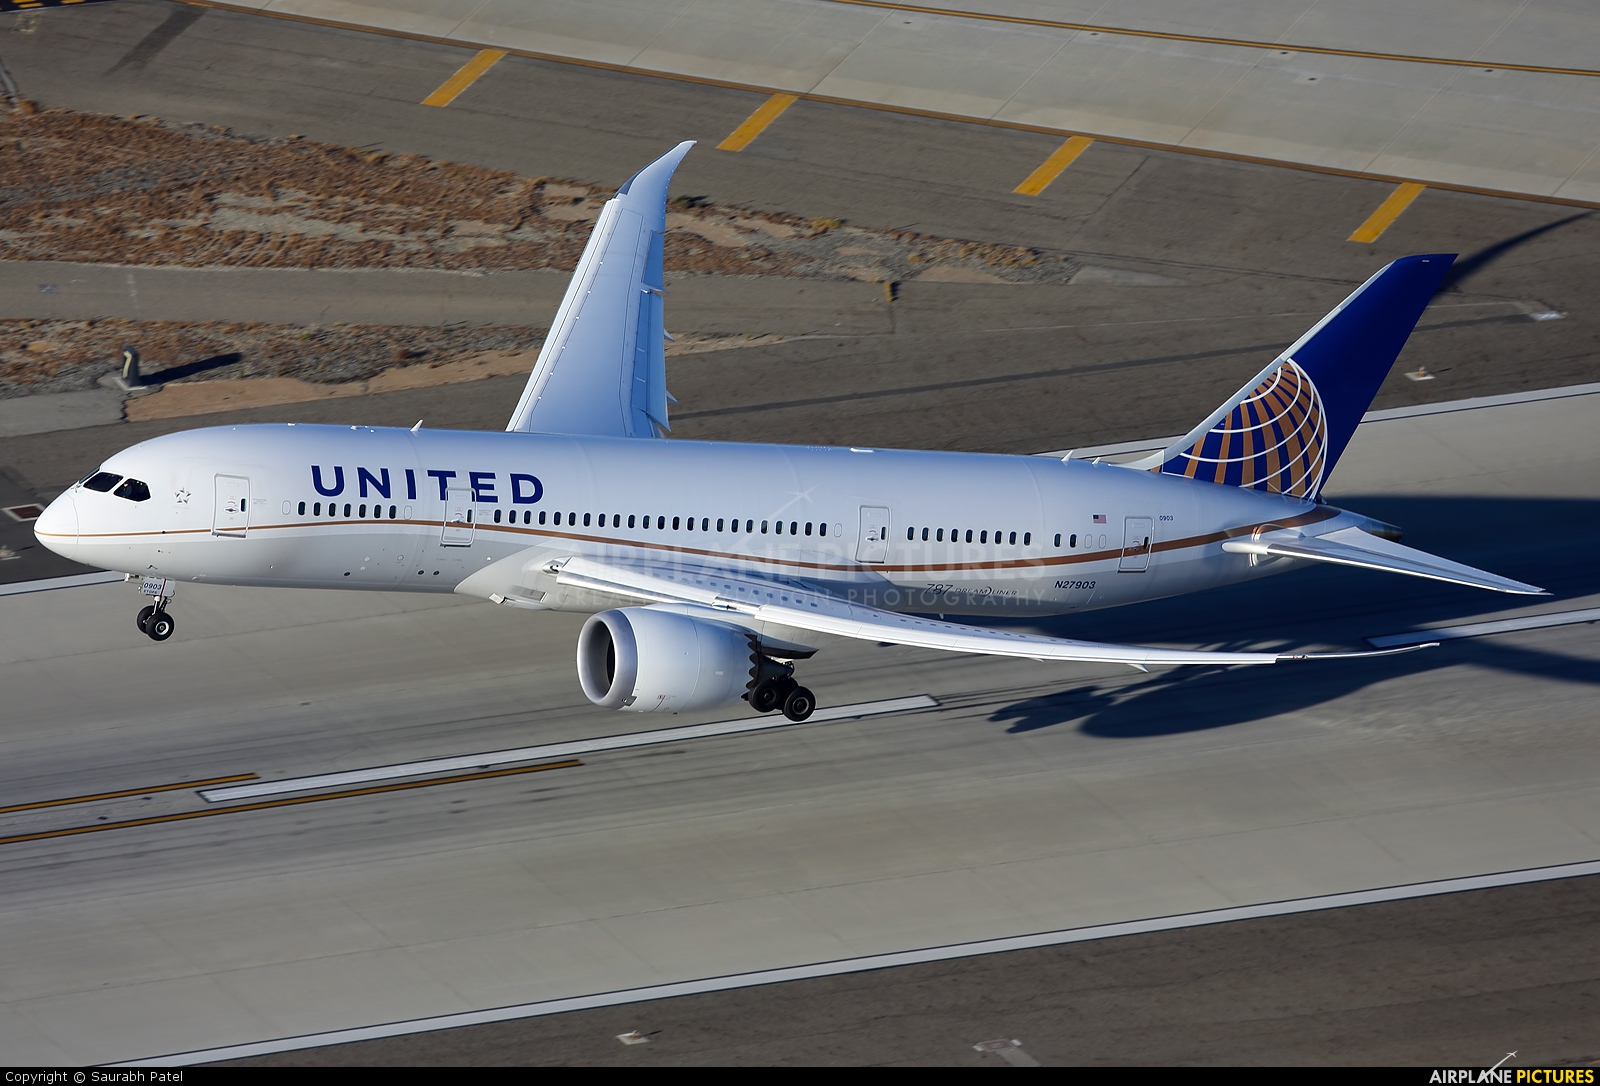 N27903 - United Airlines Boeing - 560.3KB